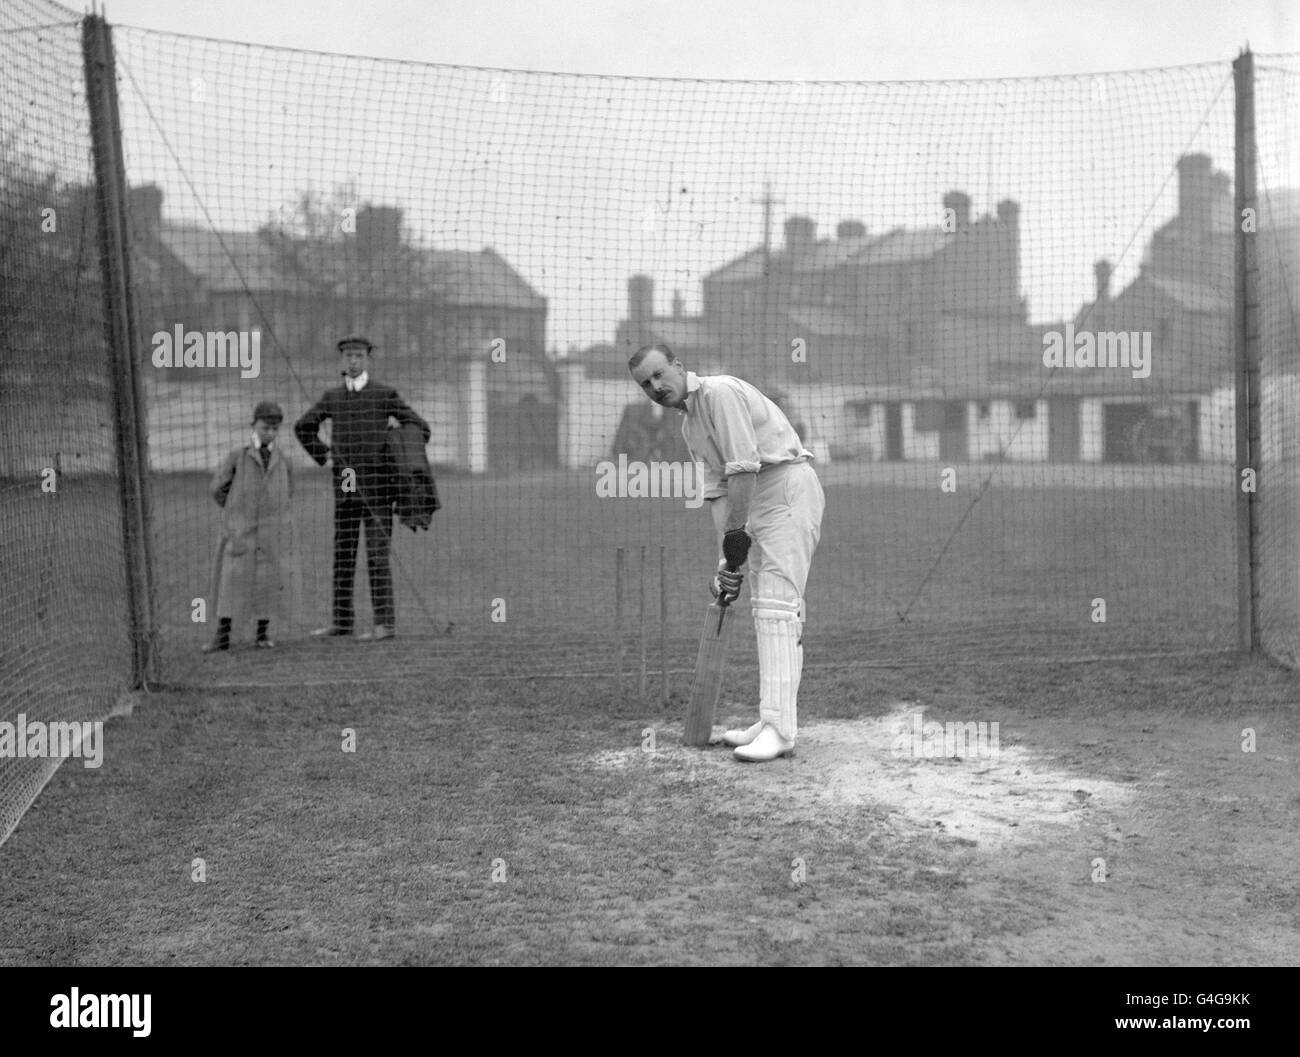 Cricket - South Africa Tour of England - Essex v South Africa - County Ground, Leyton - Stock Image